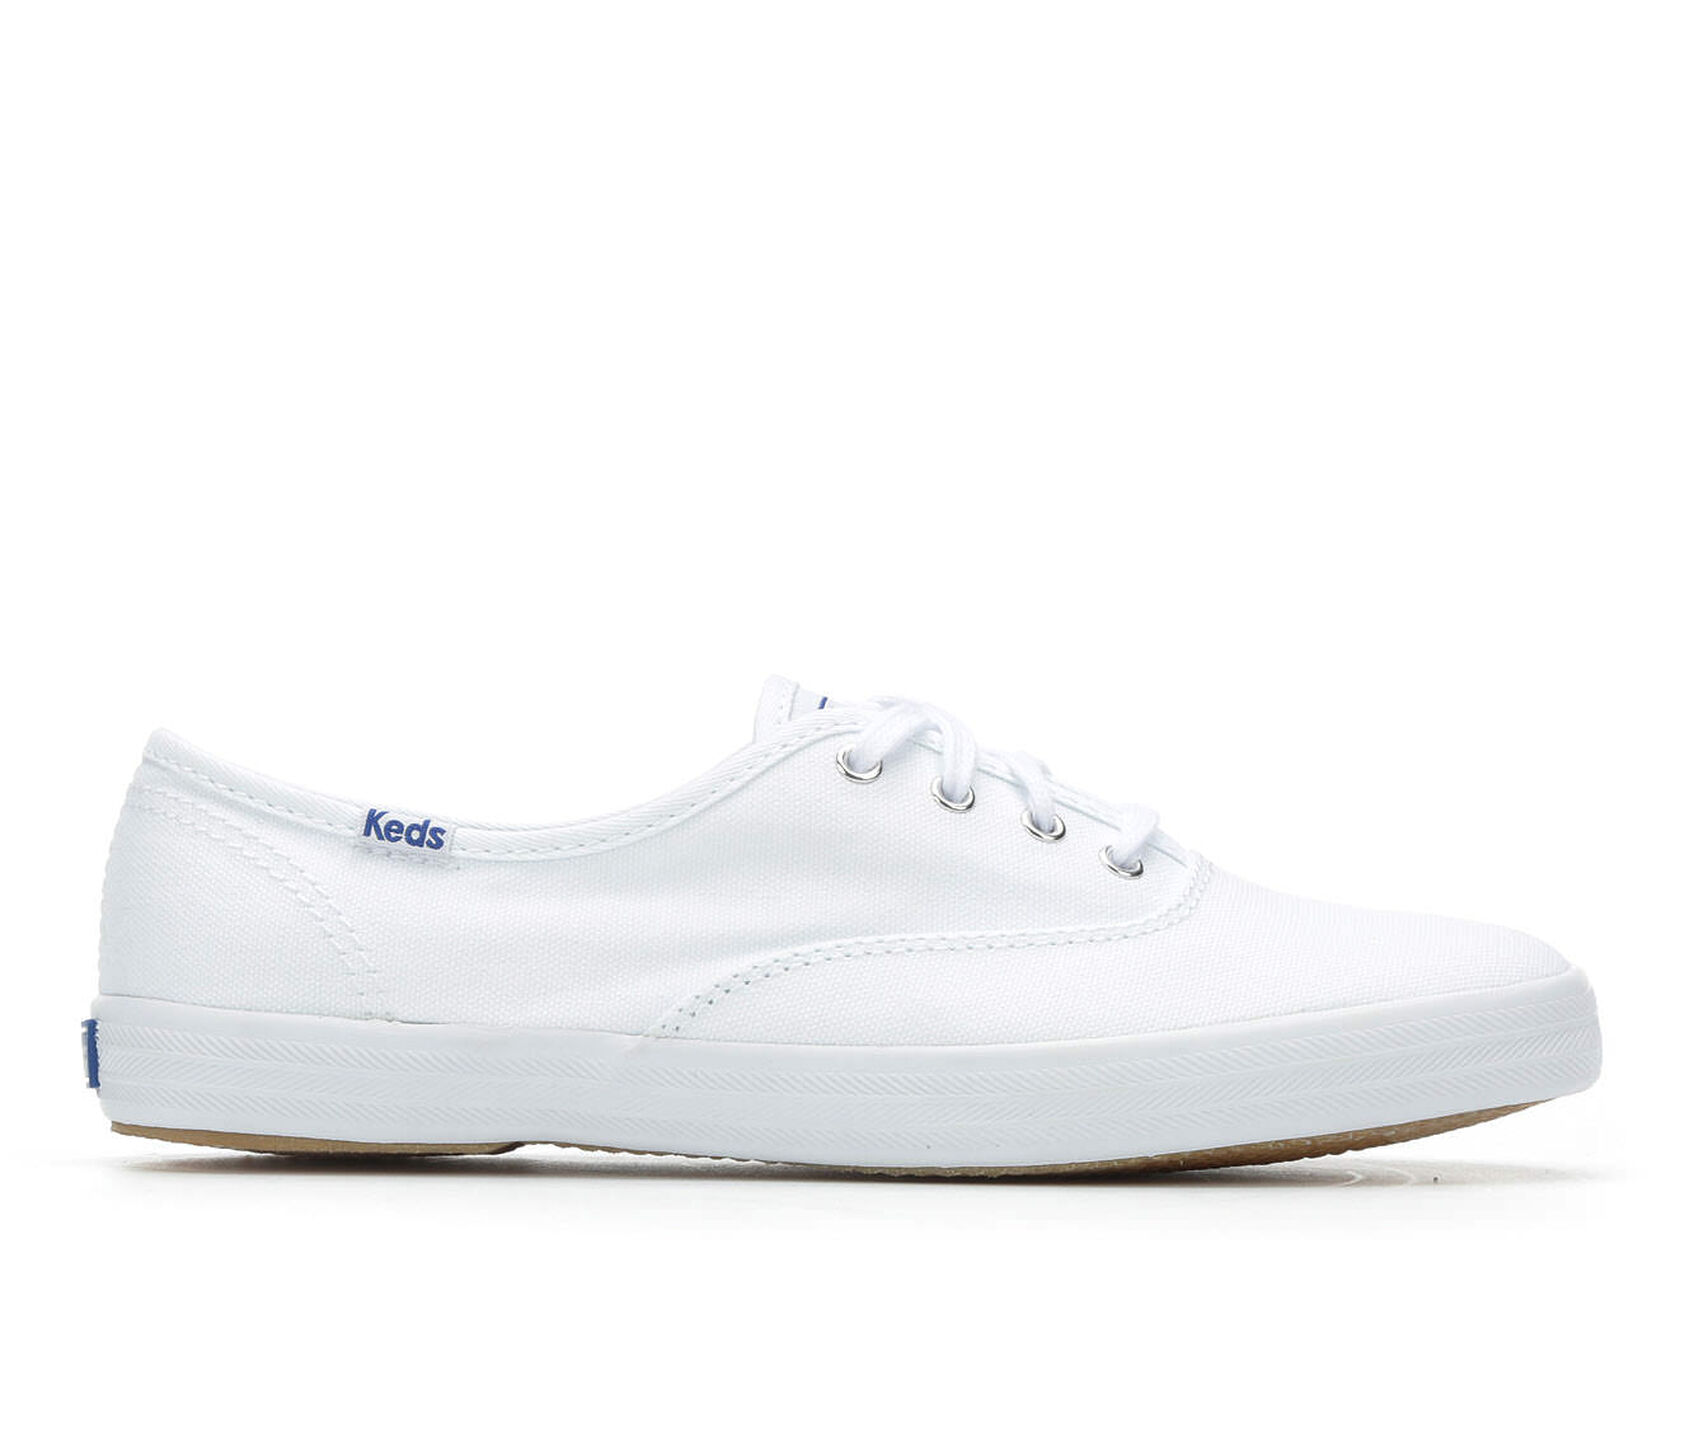 9352416a50944 ... Keds Champion Canvas Sneakers. Previous